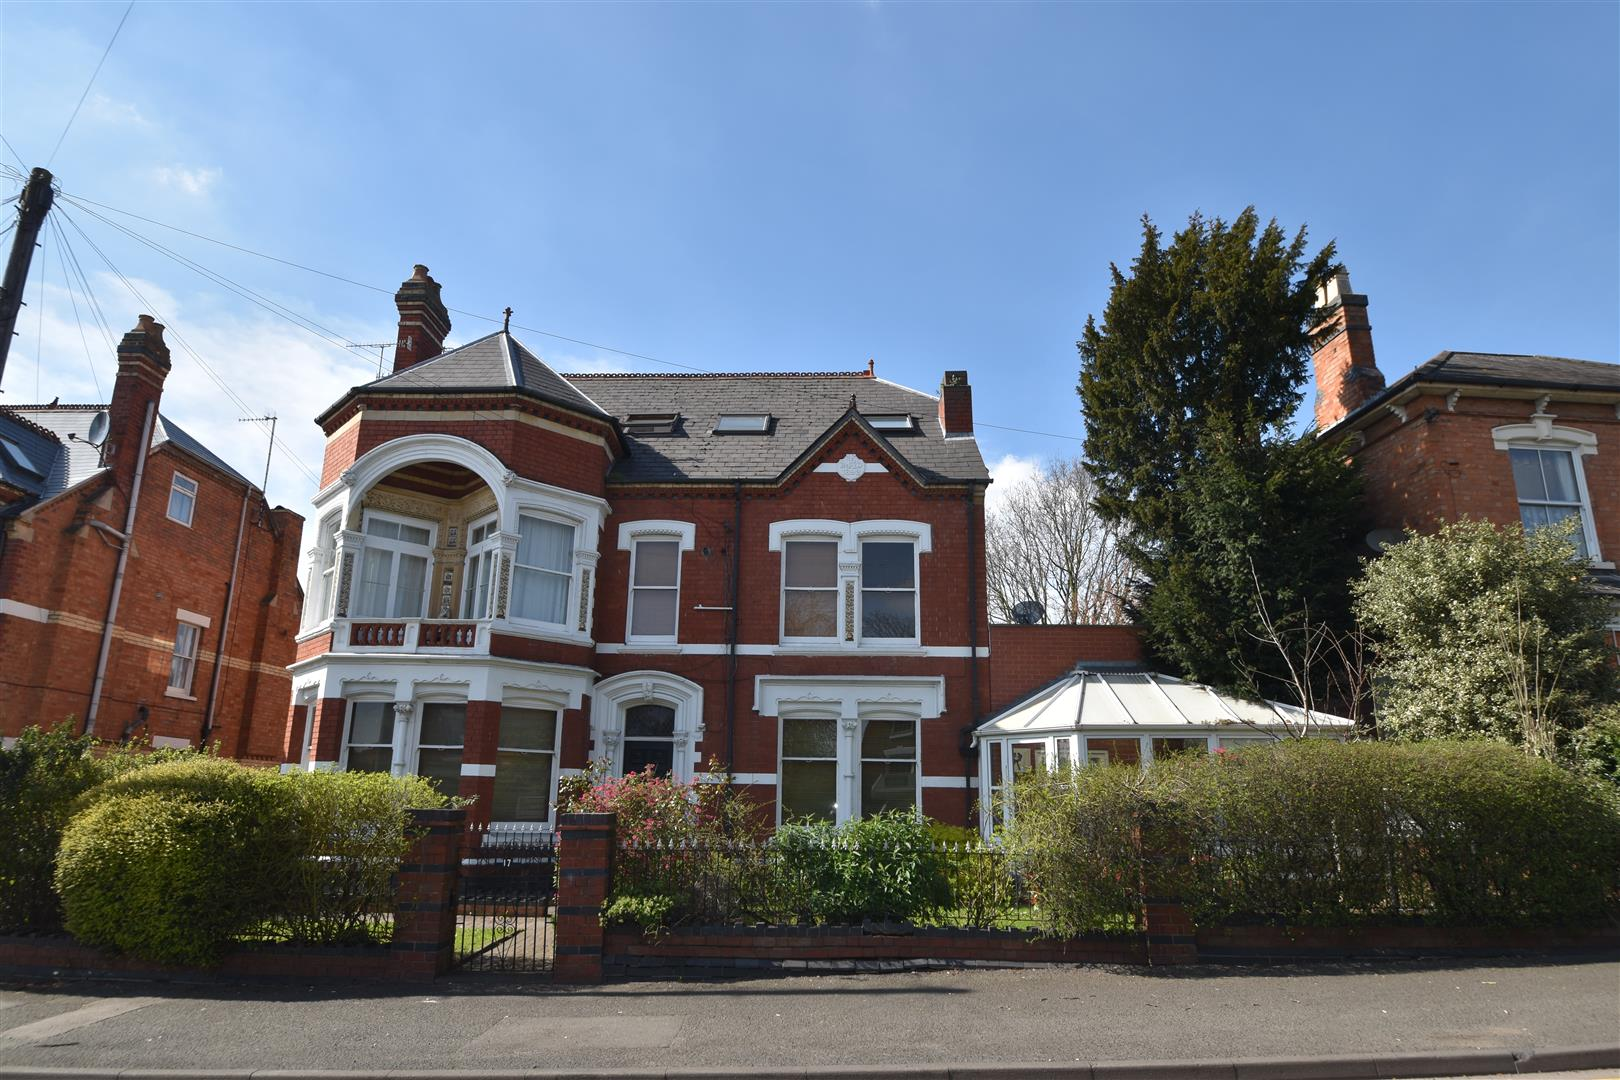 2 Bedrooms Ground Flat for sale in Droitwich Road, Worcester